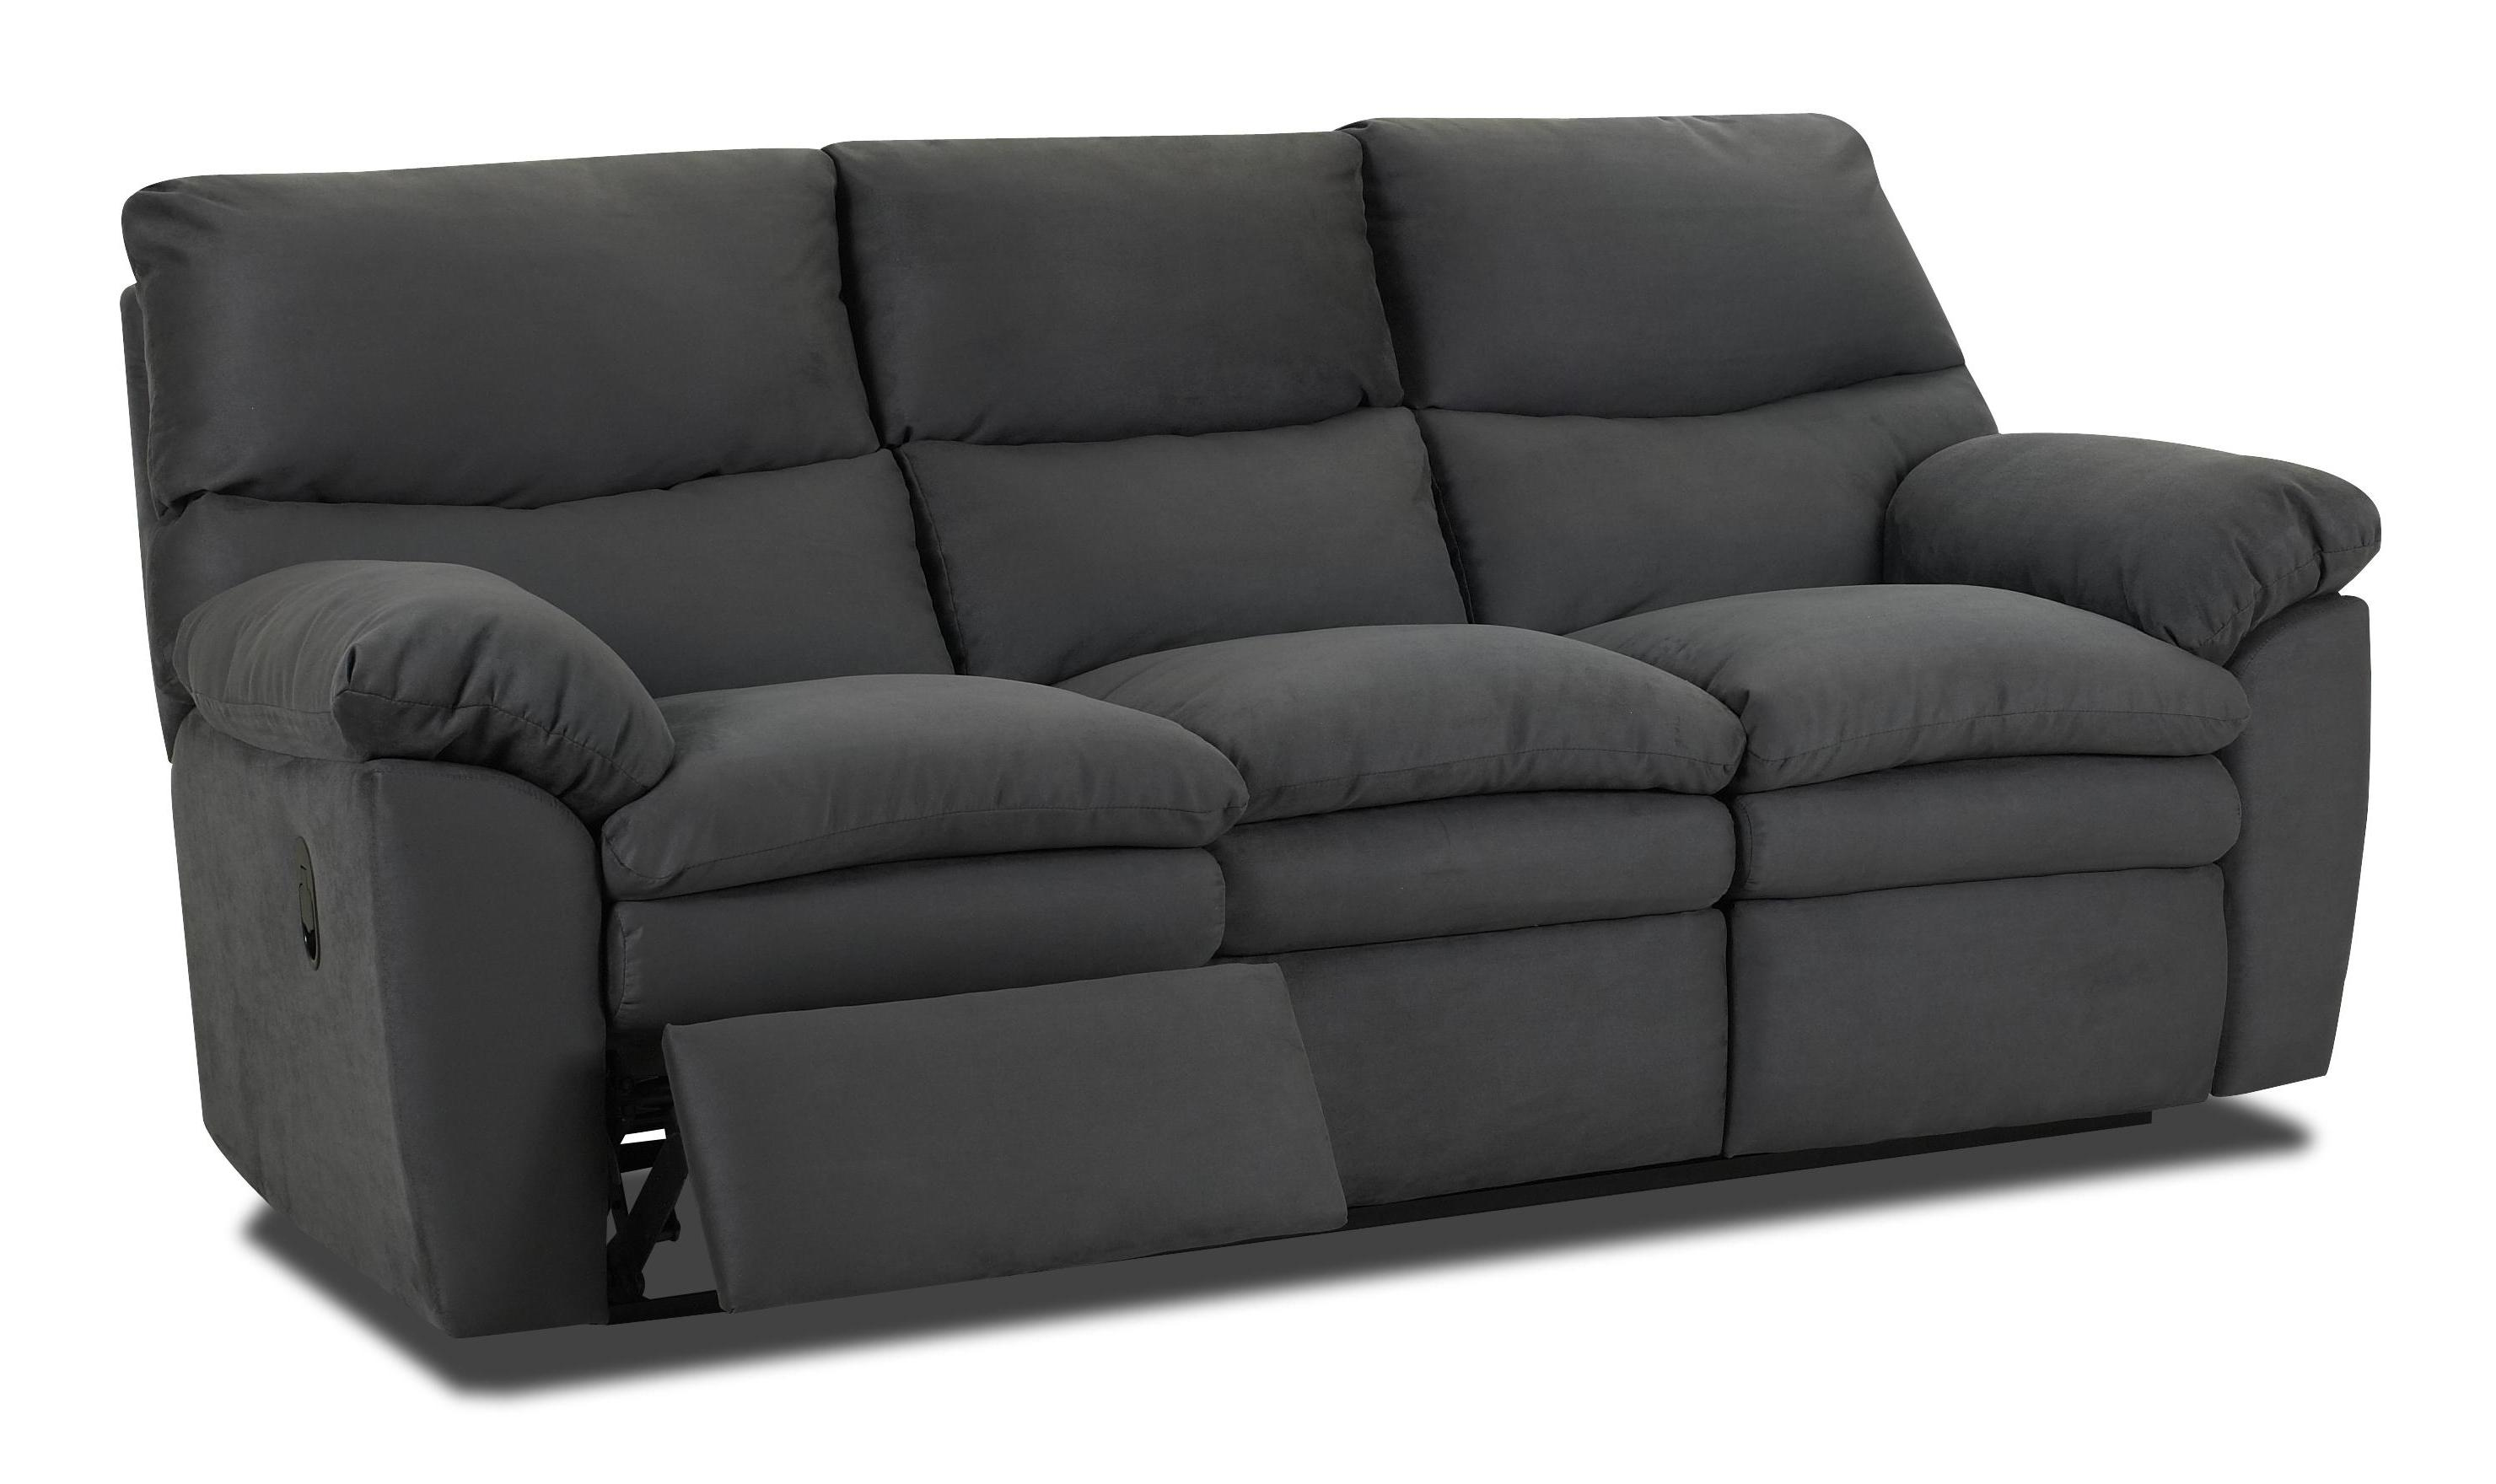 Contemporary Upholstered Reclining Sofa By Klaussner Wolf And Gardiner Wolf Furniture